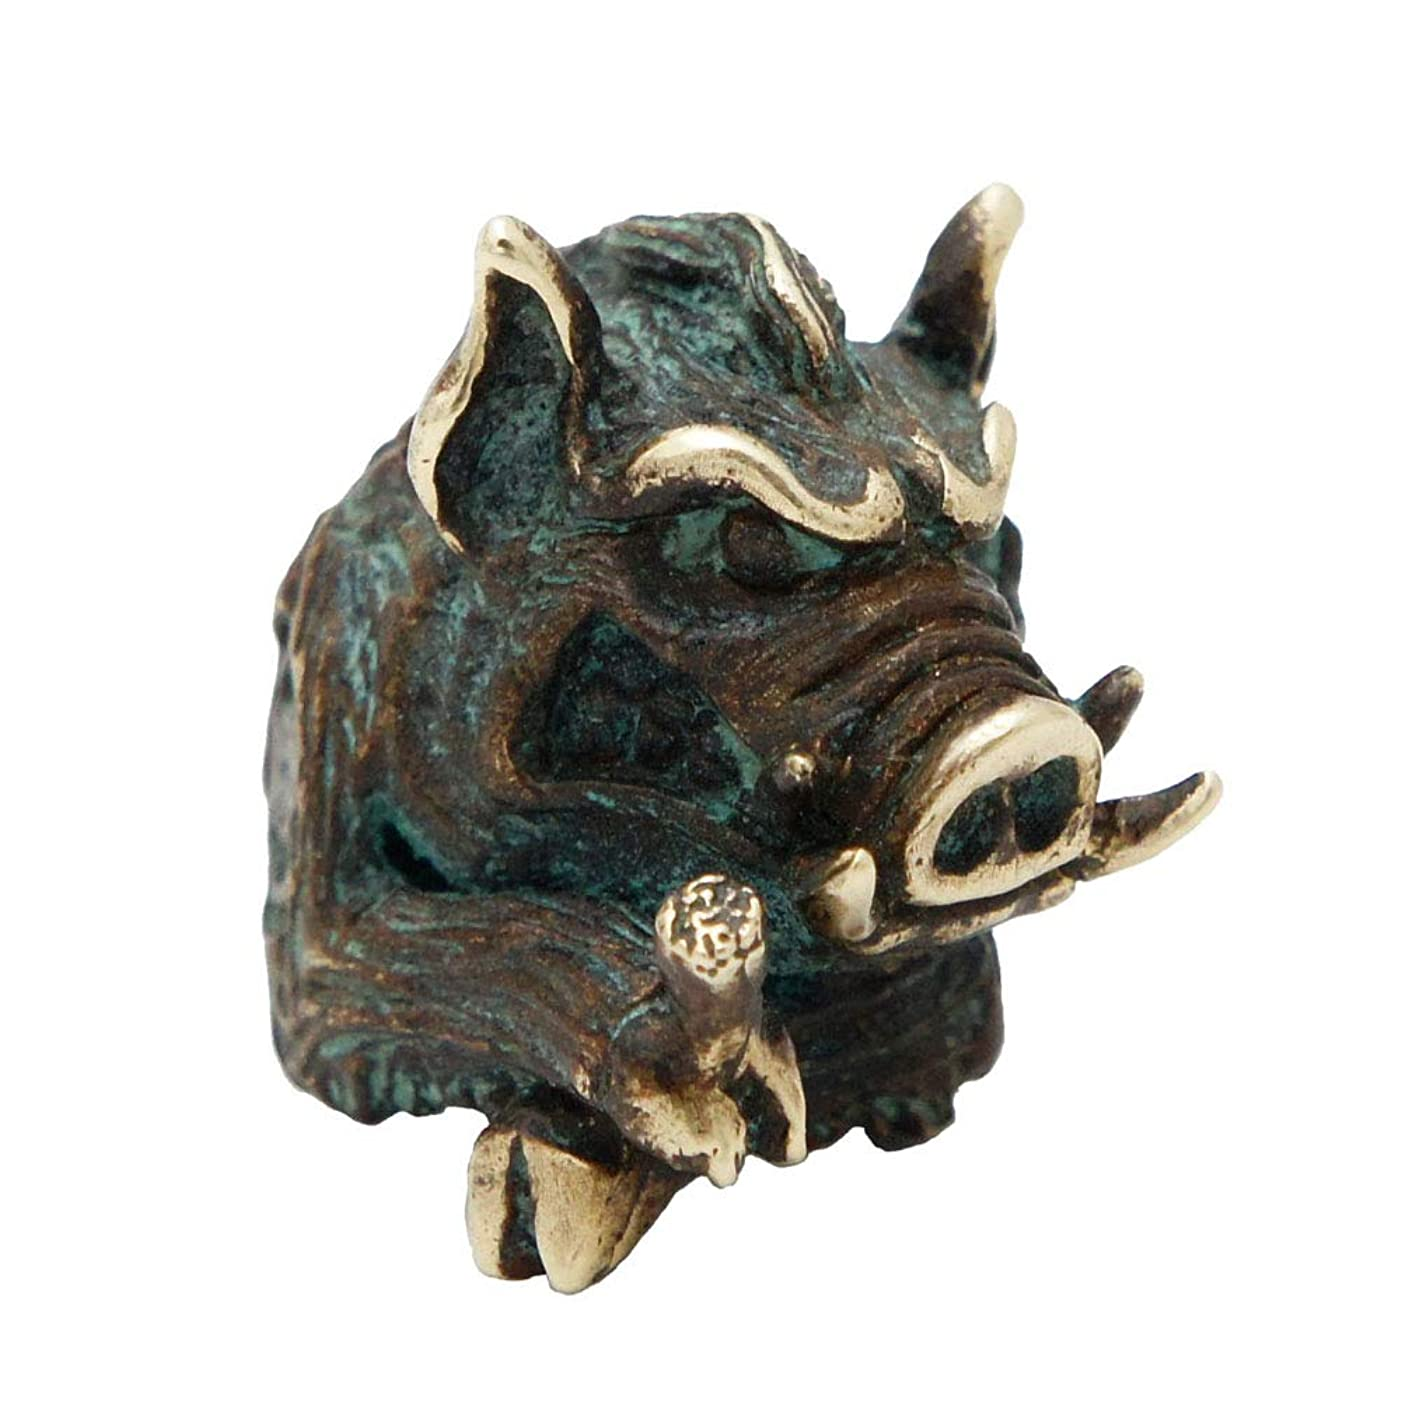 Metalfable Wild?Boar Paracord Bead Hand-Casted, Bronze Charms EDC Accessories for Pendant Buckle,Keychain Pendant,Knife Lanyard,Zipper Pull